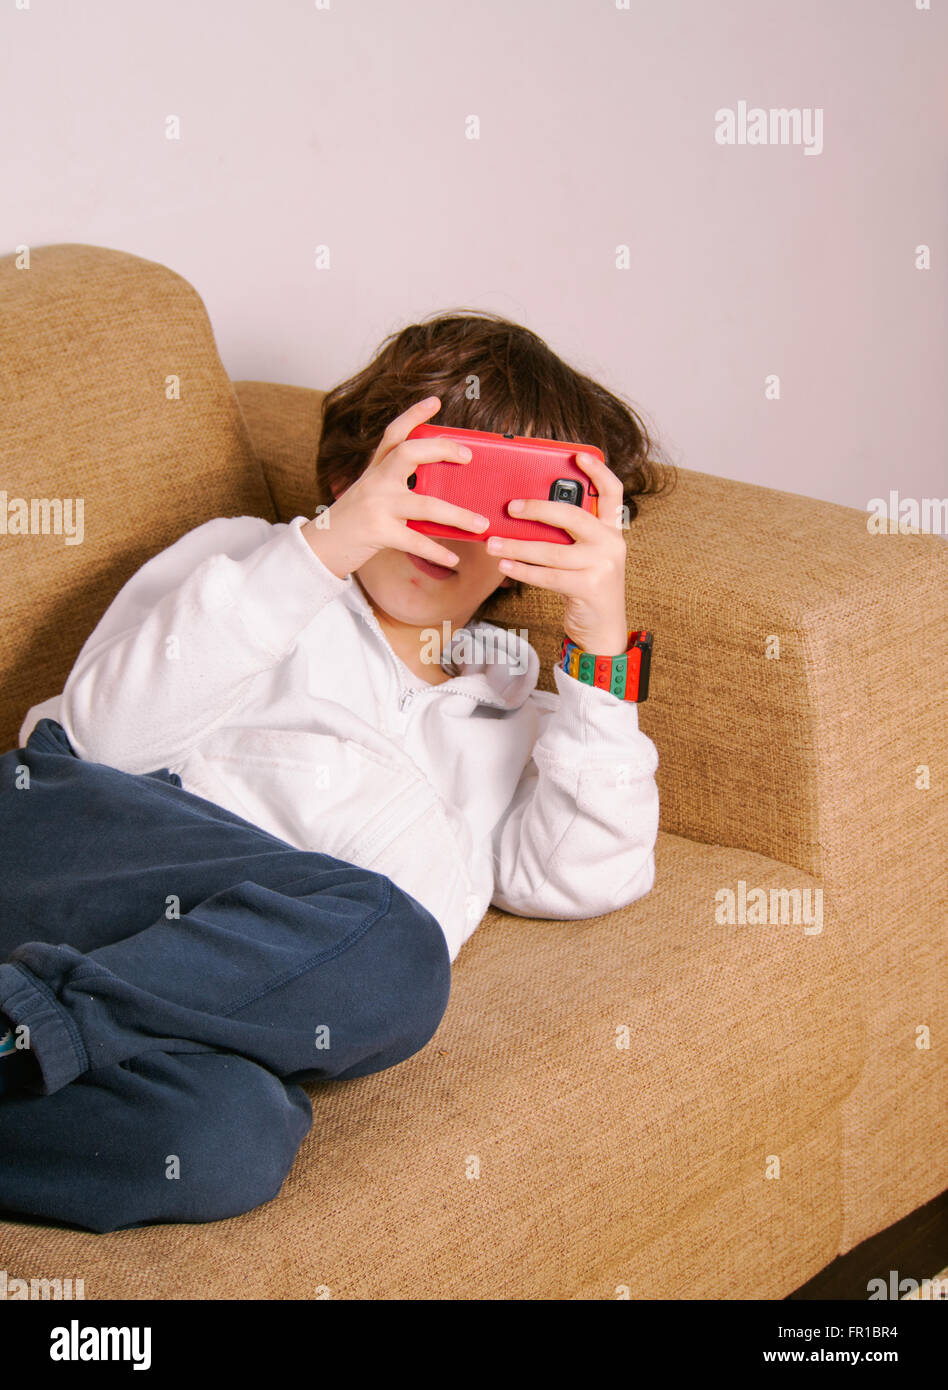 elementary school boy engrossed in a game on a mobile phone on the sofa - Stock Image